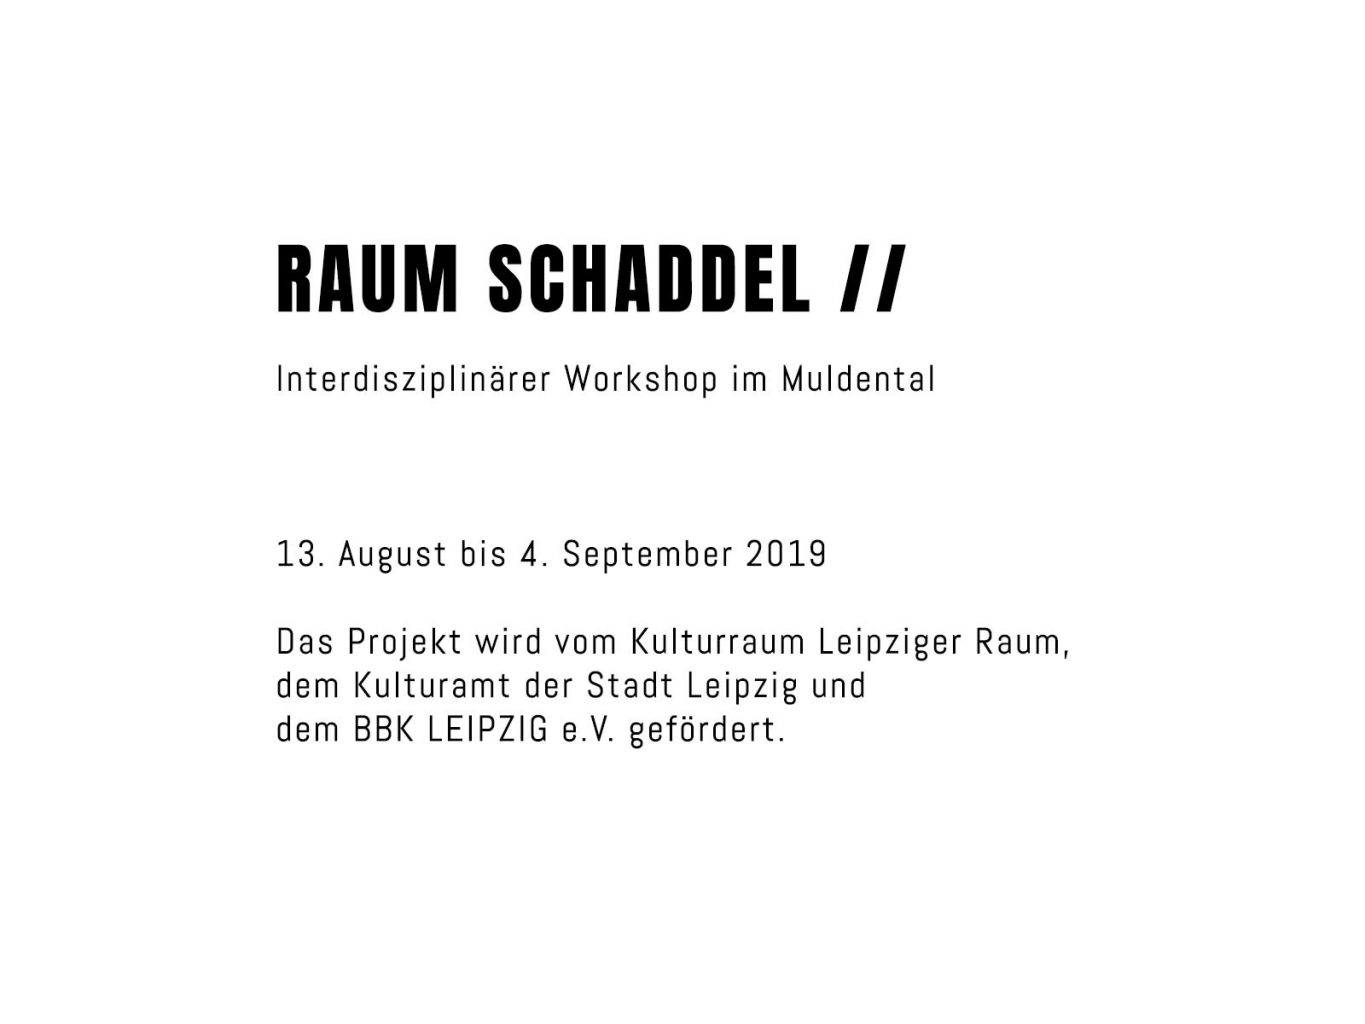 Raumschaddel Workshop